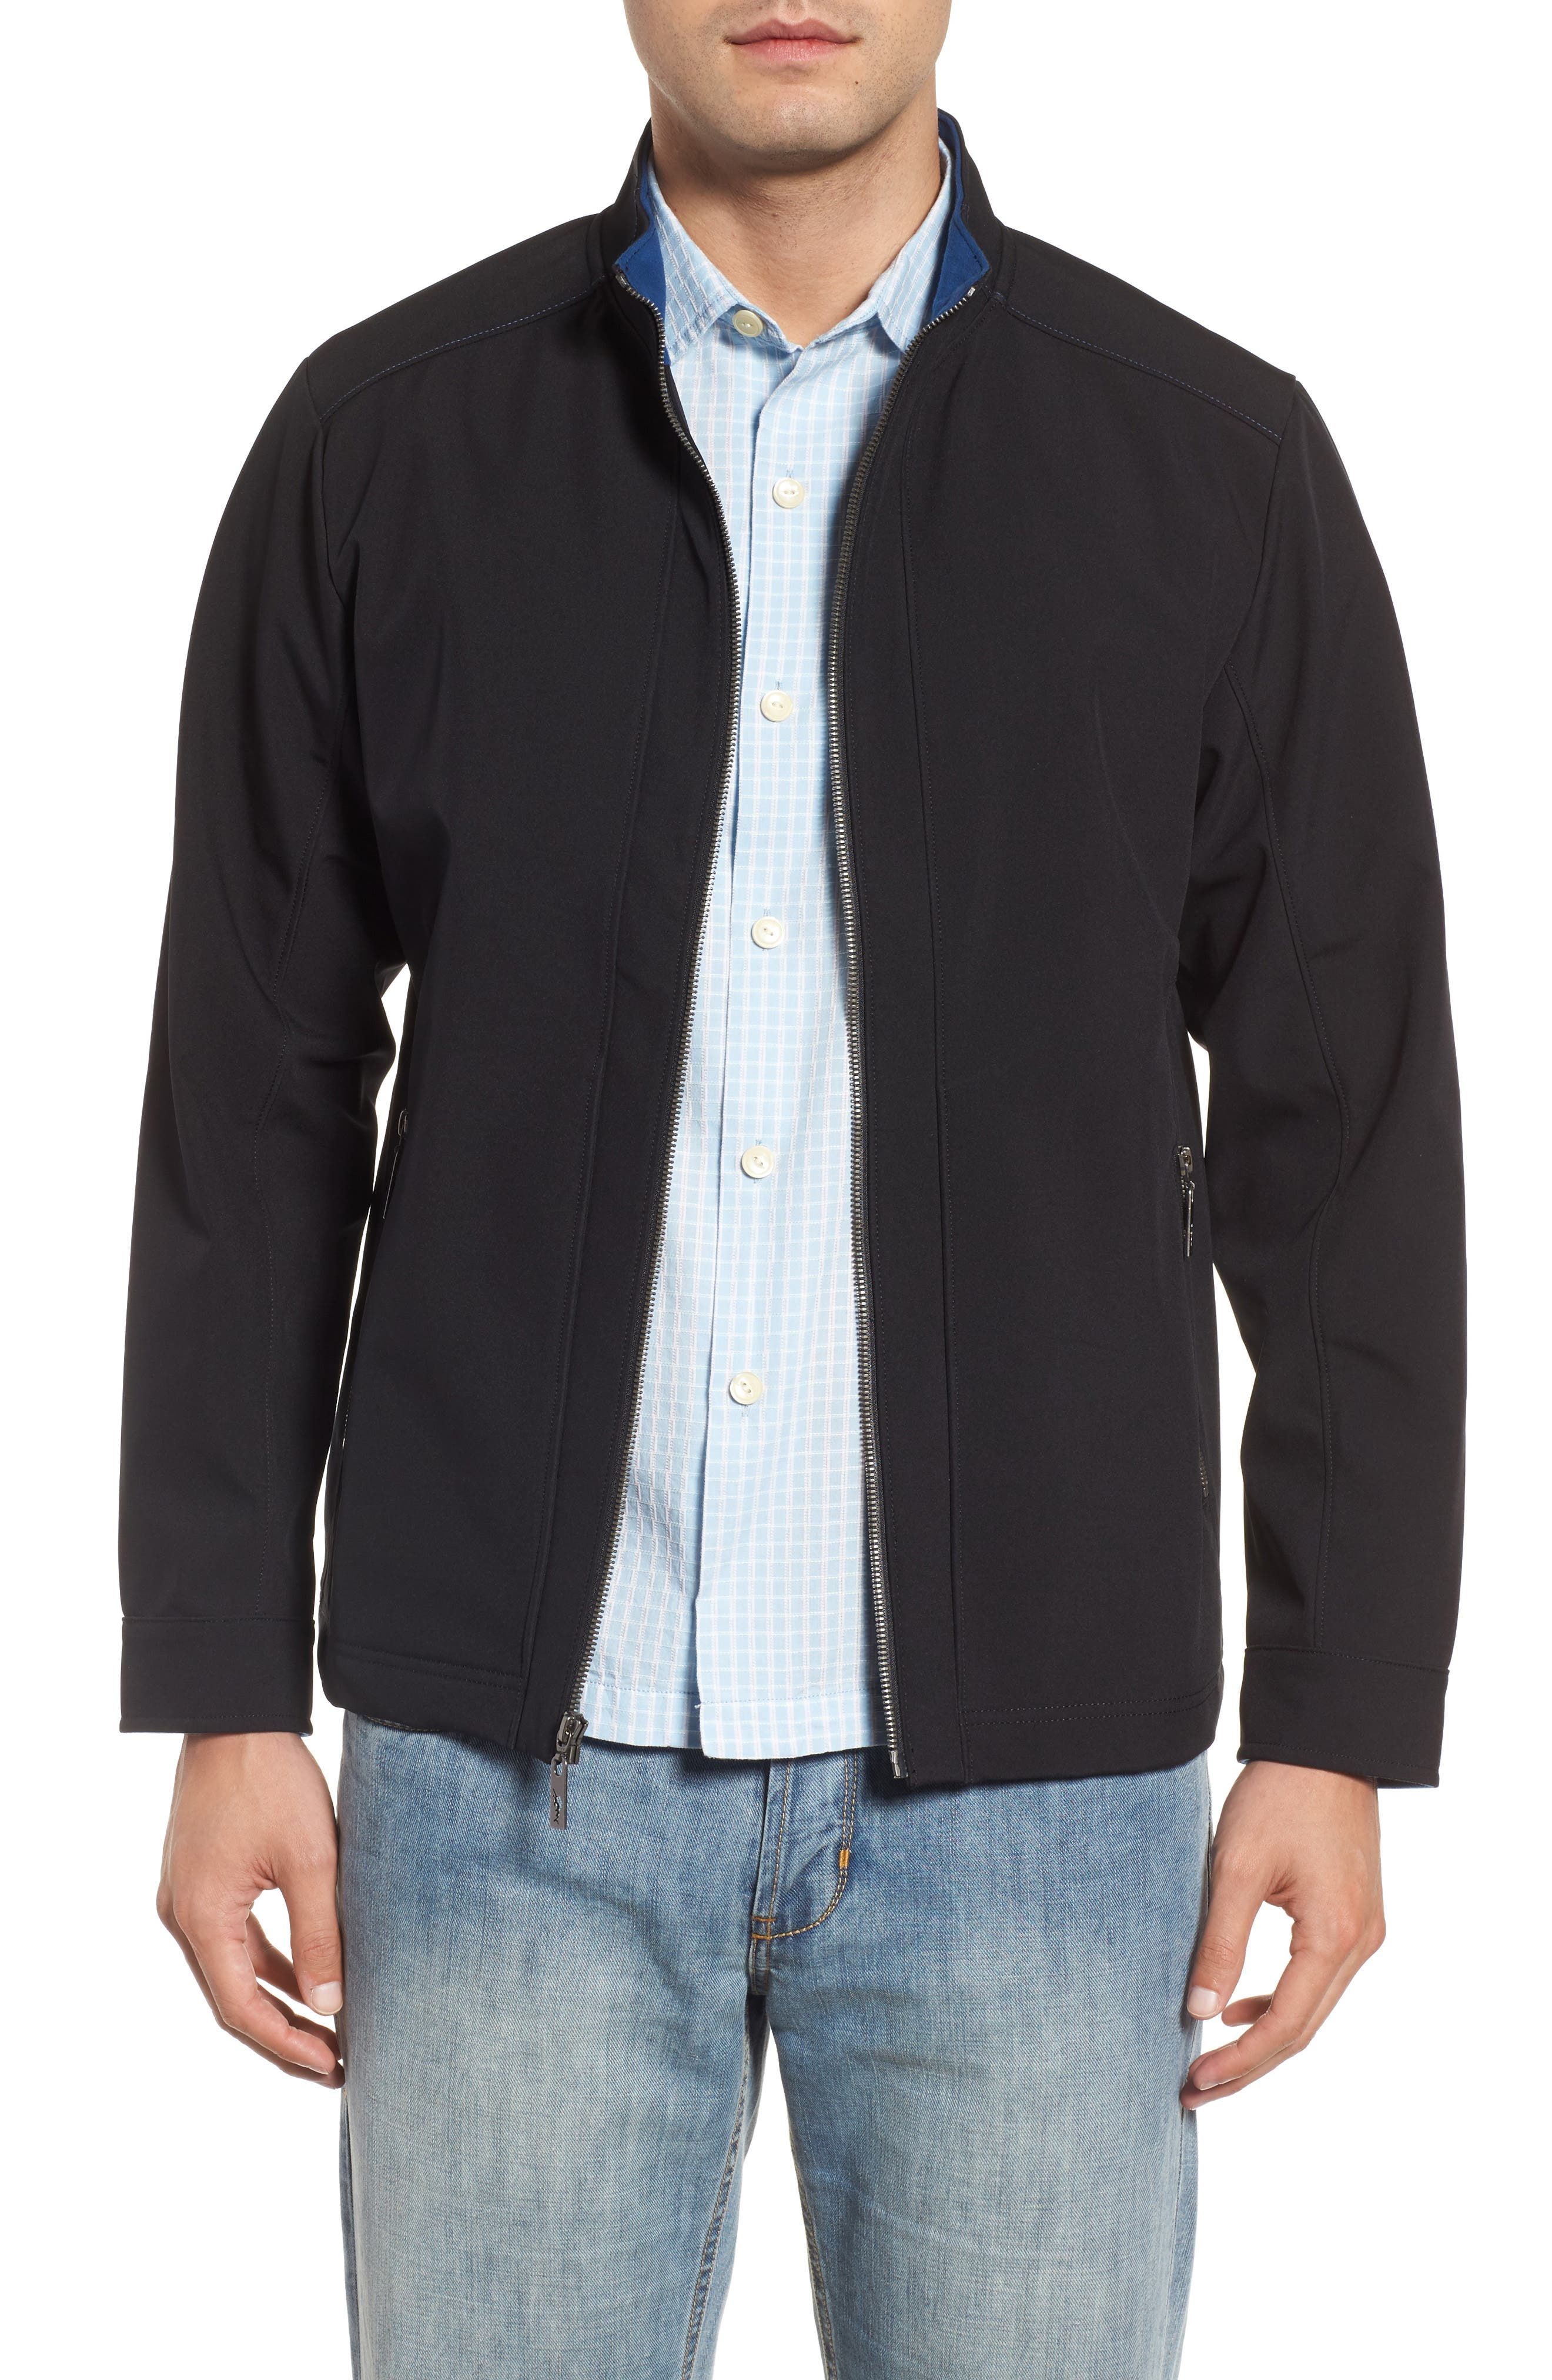 Alternate Image 1 Selected - Tommy Bahama Downswing Zip Jacket